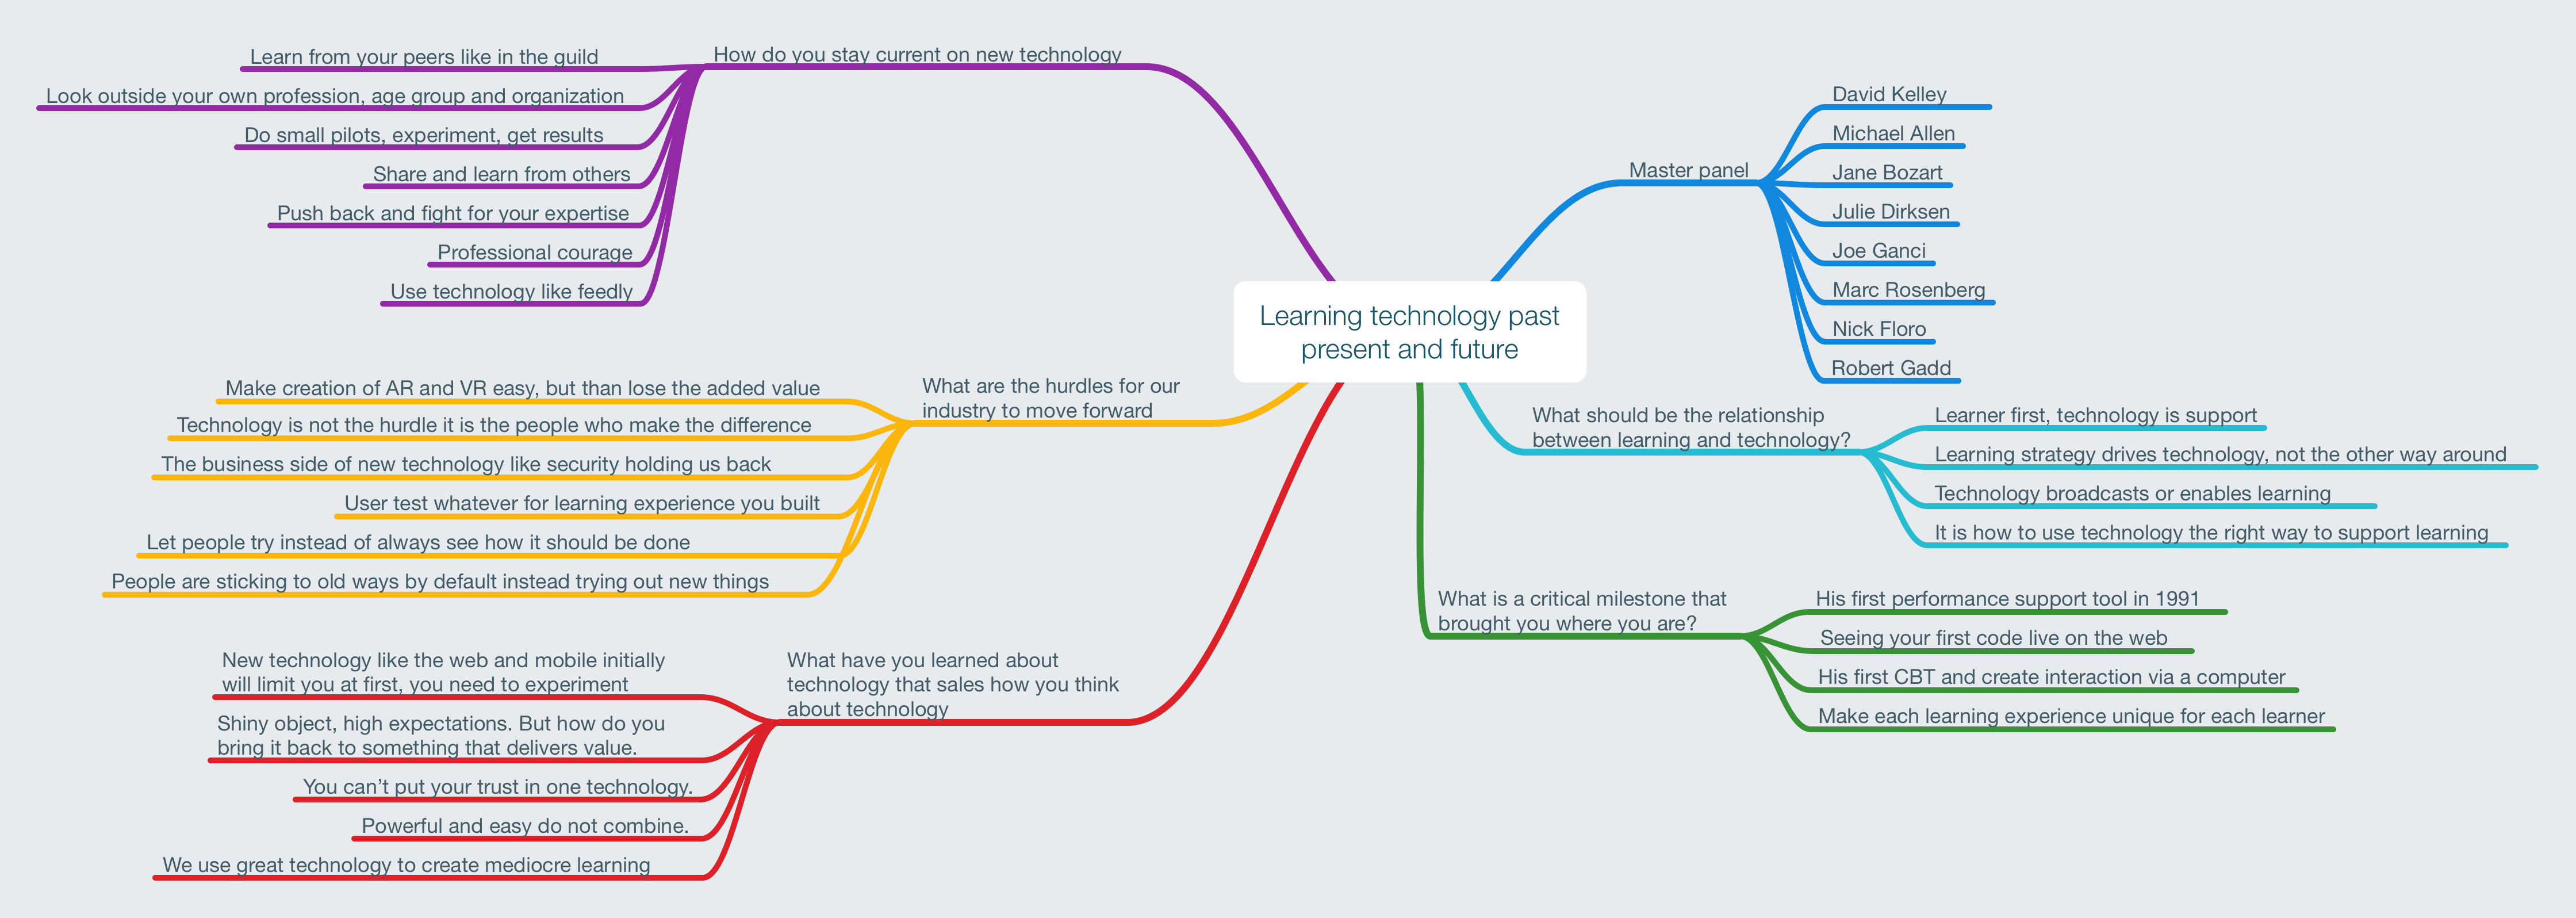 Learning technology past present and future.png